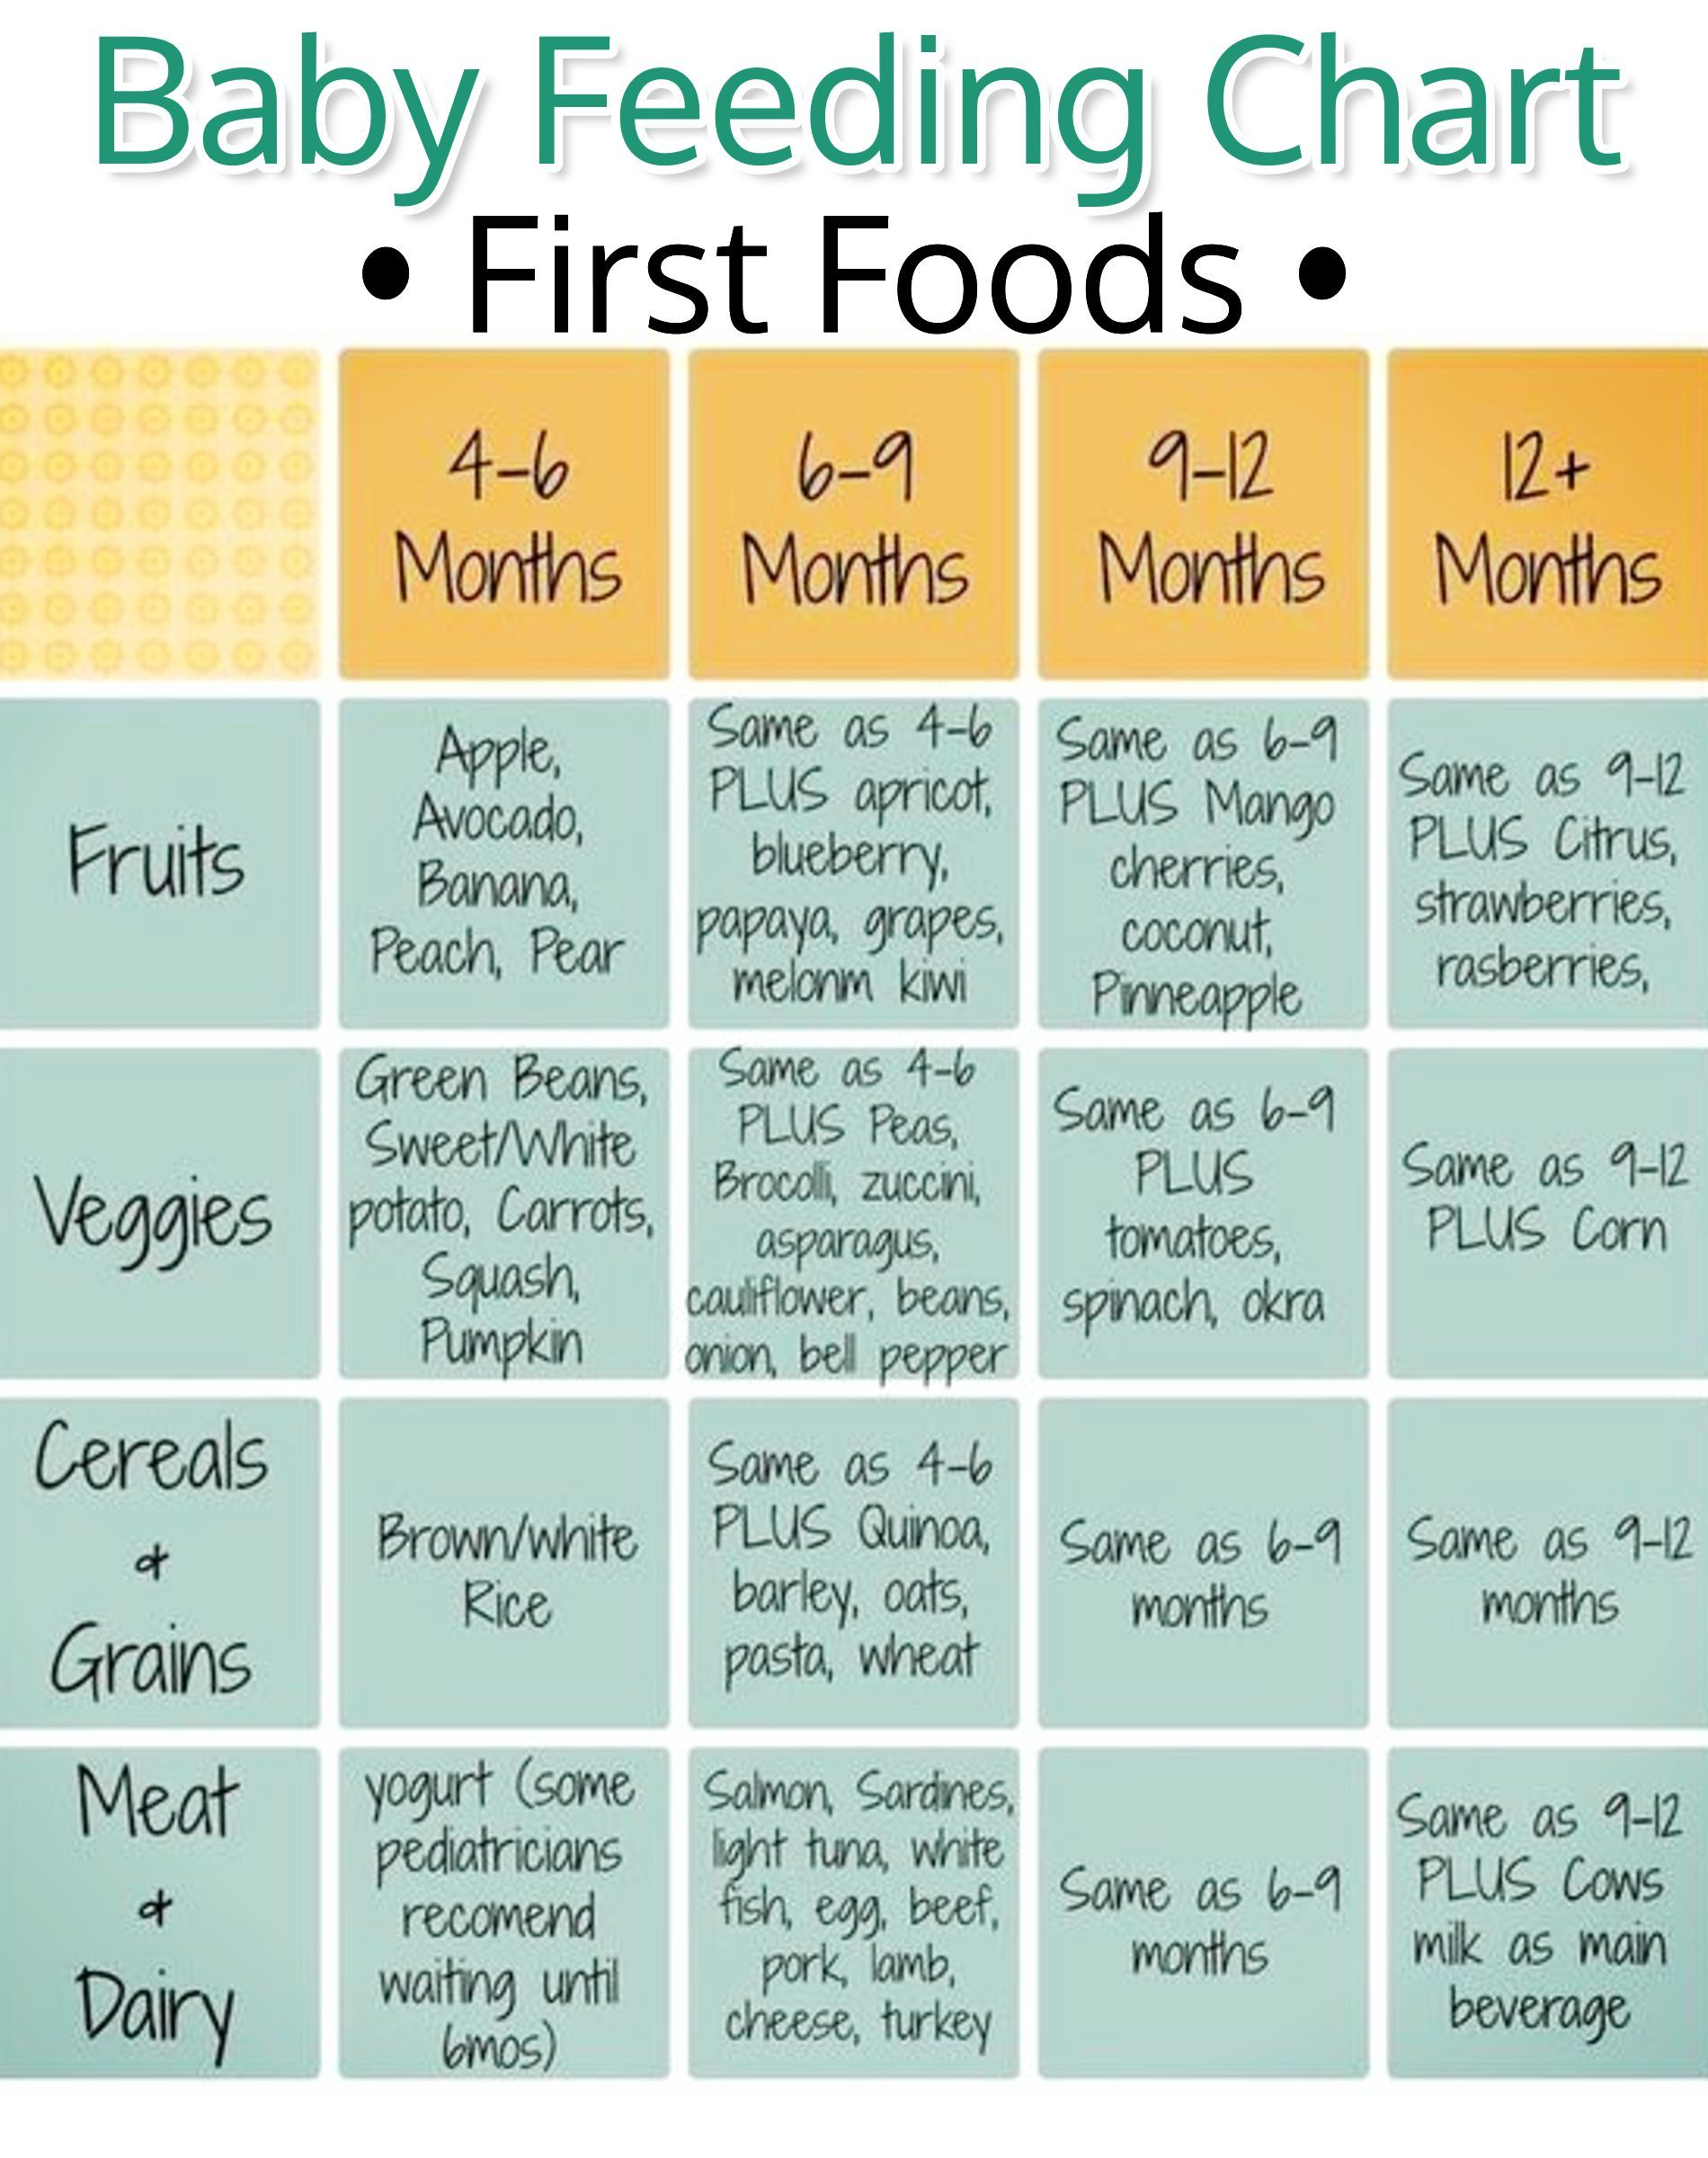 Baby Feeding Chart For First Baby Foods Helpful Chart For BabyS